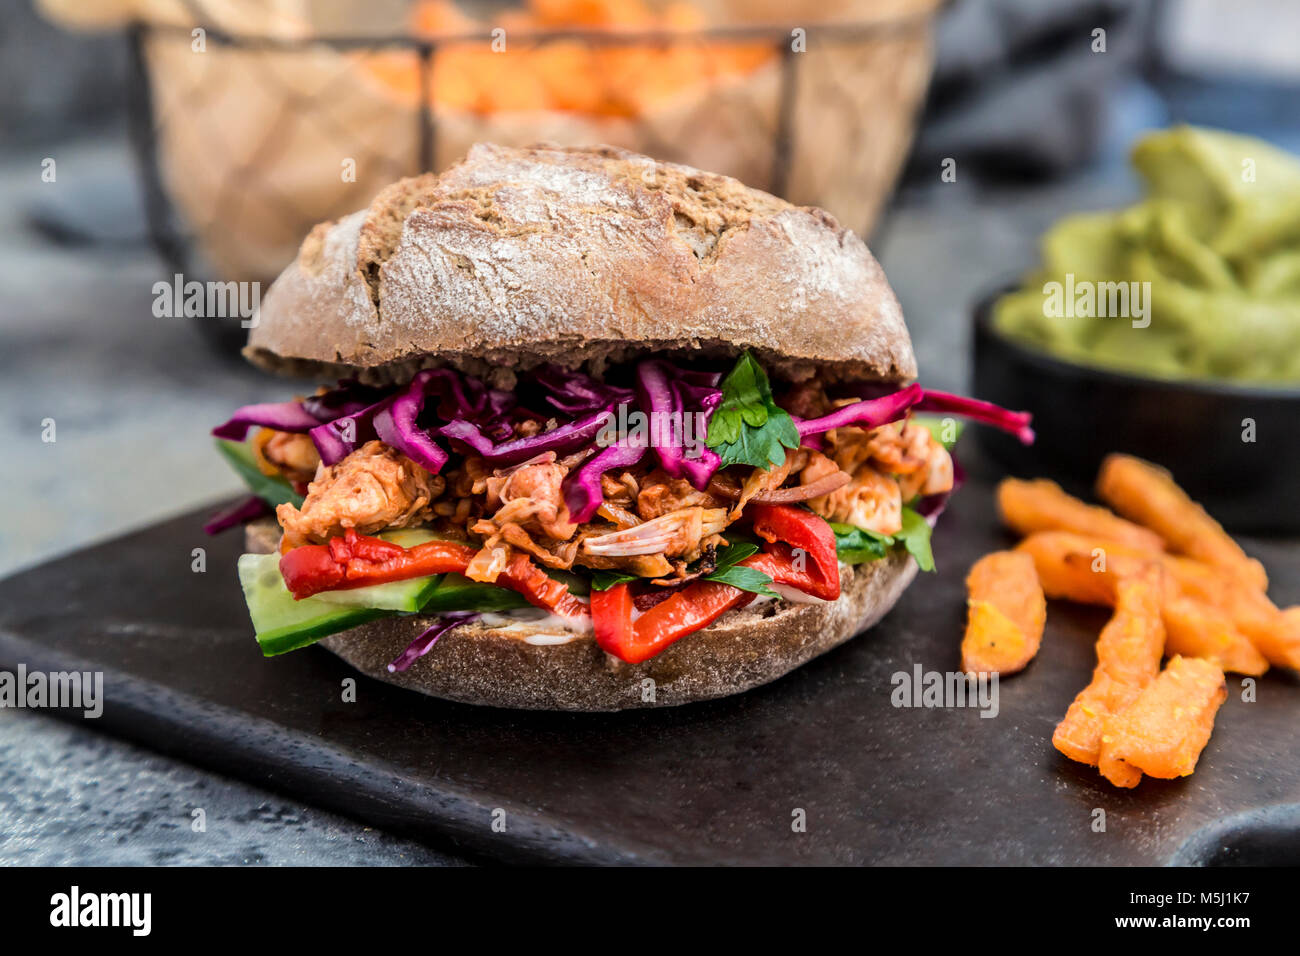 Pulled pork jackfruit burger, jackfruit, red cabbage, cucumber, paprika, parsley - Stock Image